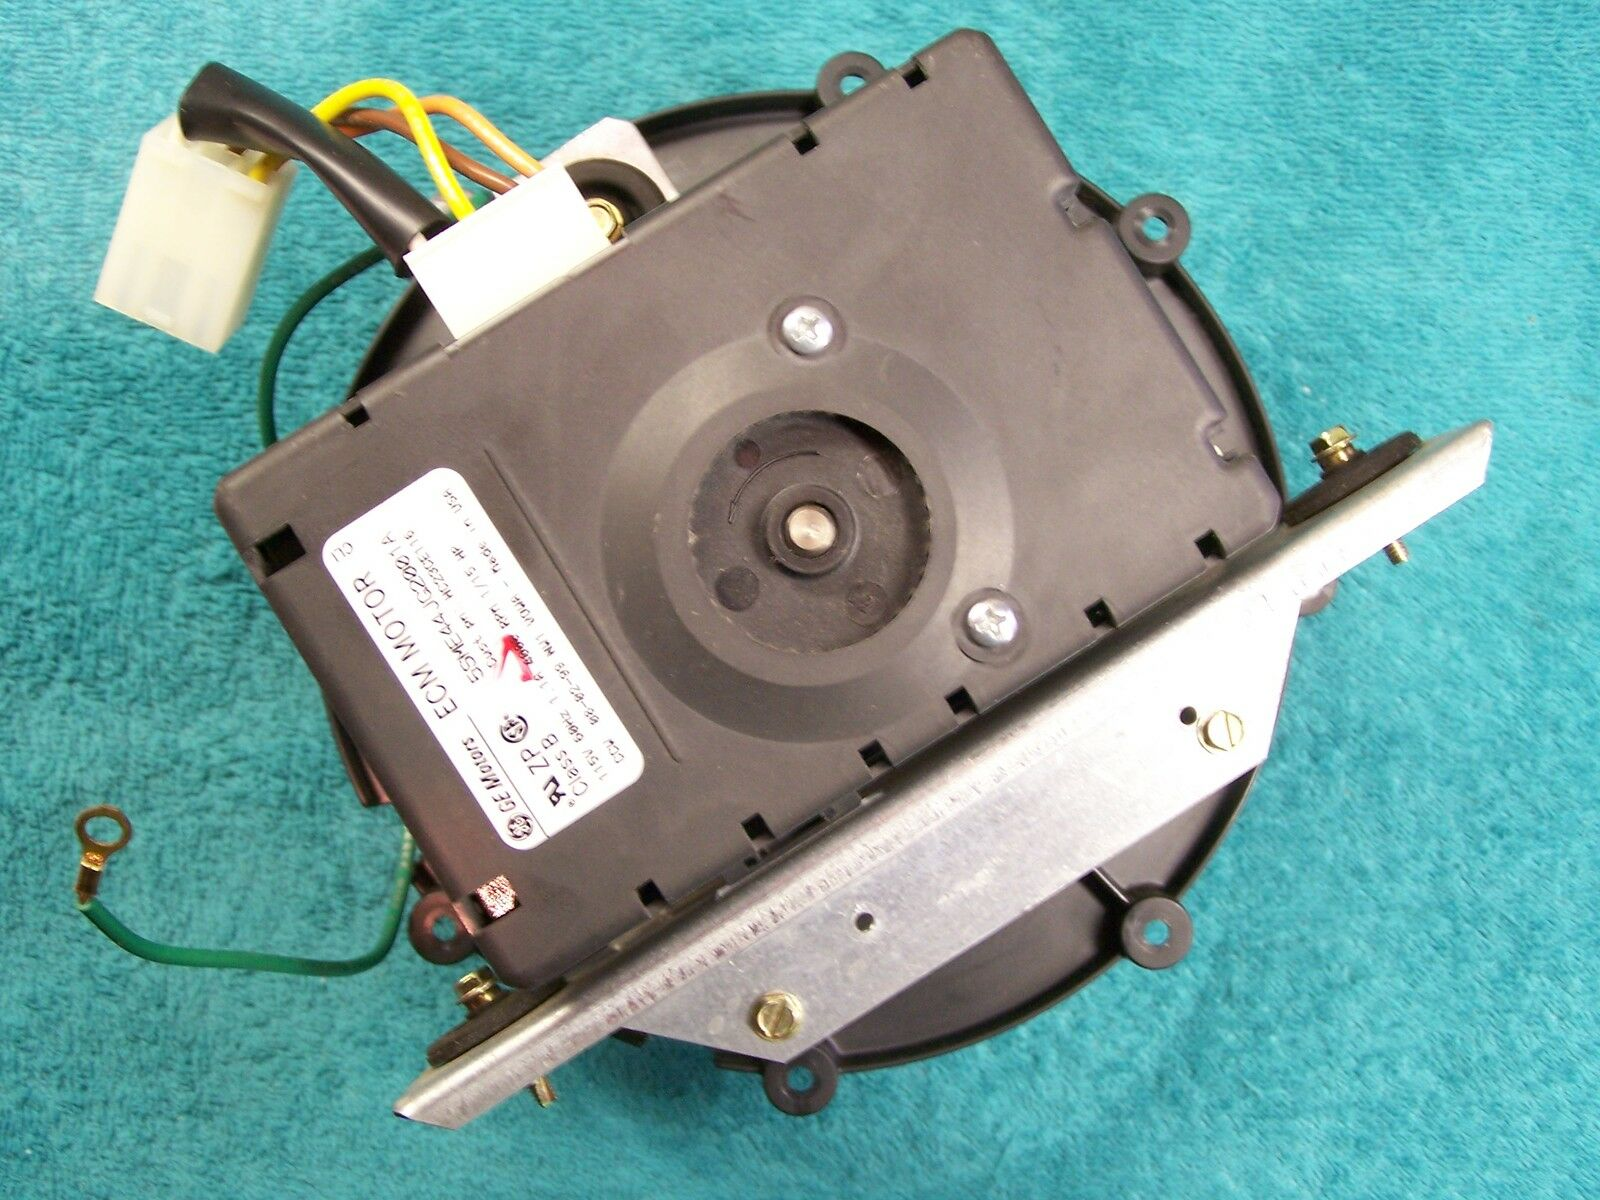 Carrier bryant hc23ce116 oem ecm inducer motor assembly for Bryant inducer motor replacement